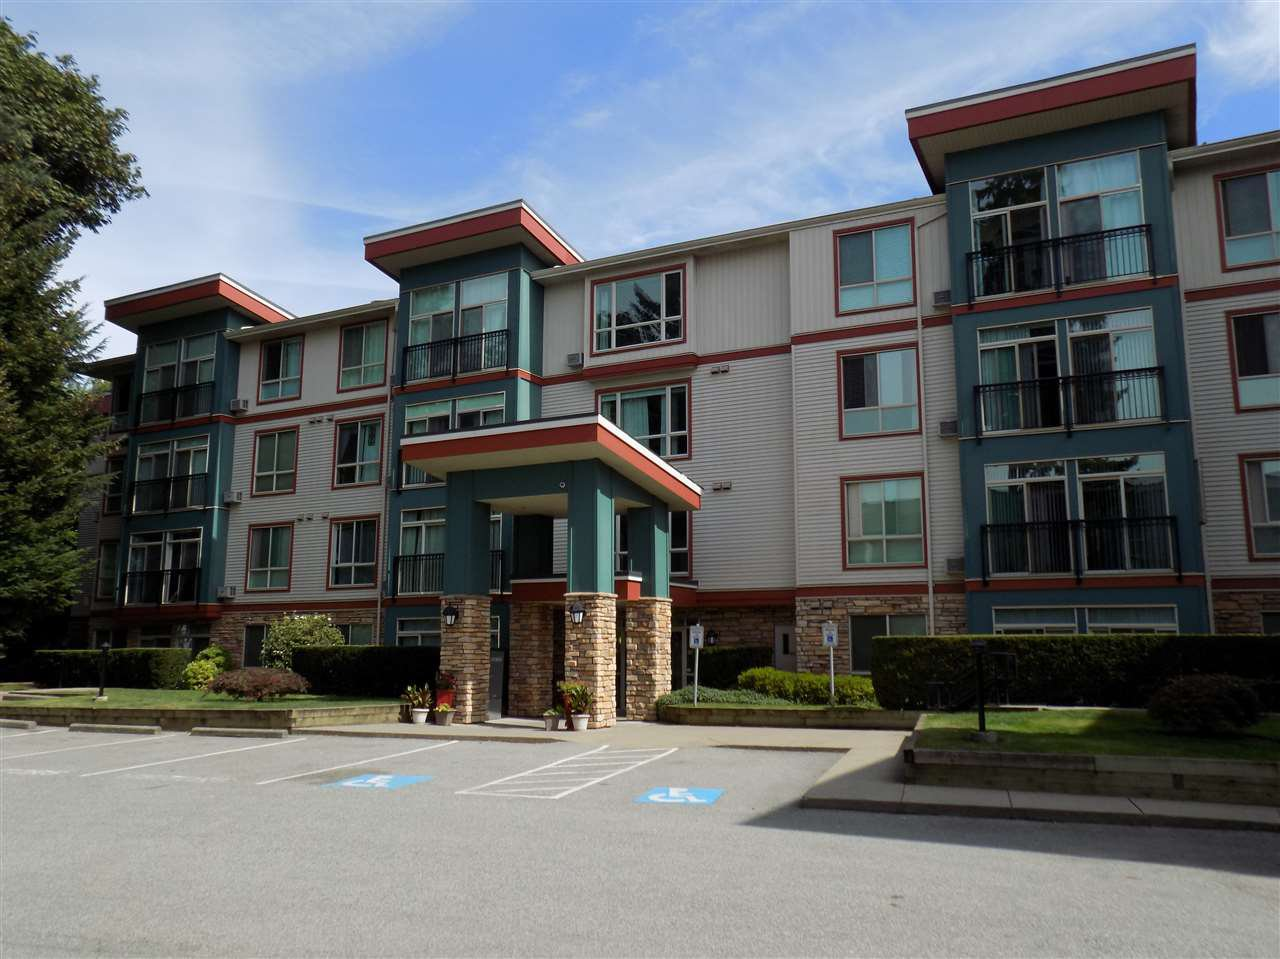 "Main Photo: 205 33485 SOUTH FRASER Way in Abbotsford: Central Abbotsford Condo for sale in ""CITADEL RIDGE"" : MLS®# R2490166"